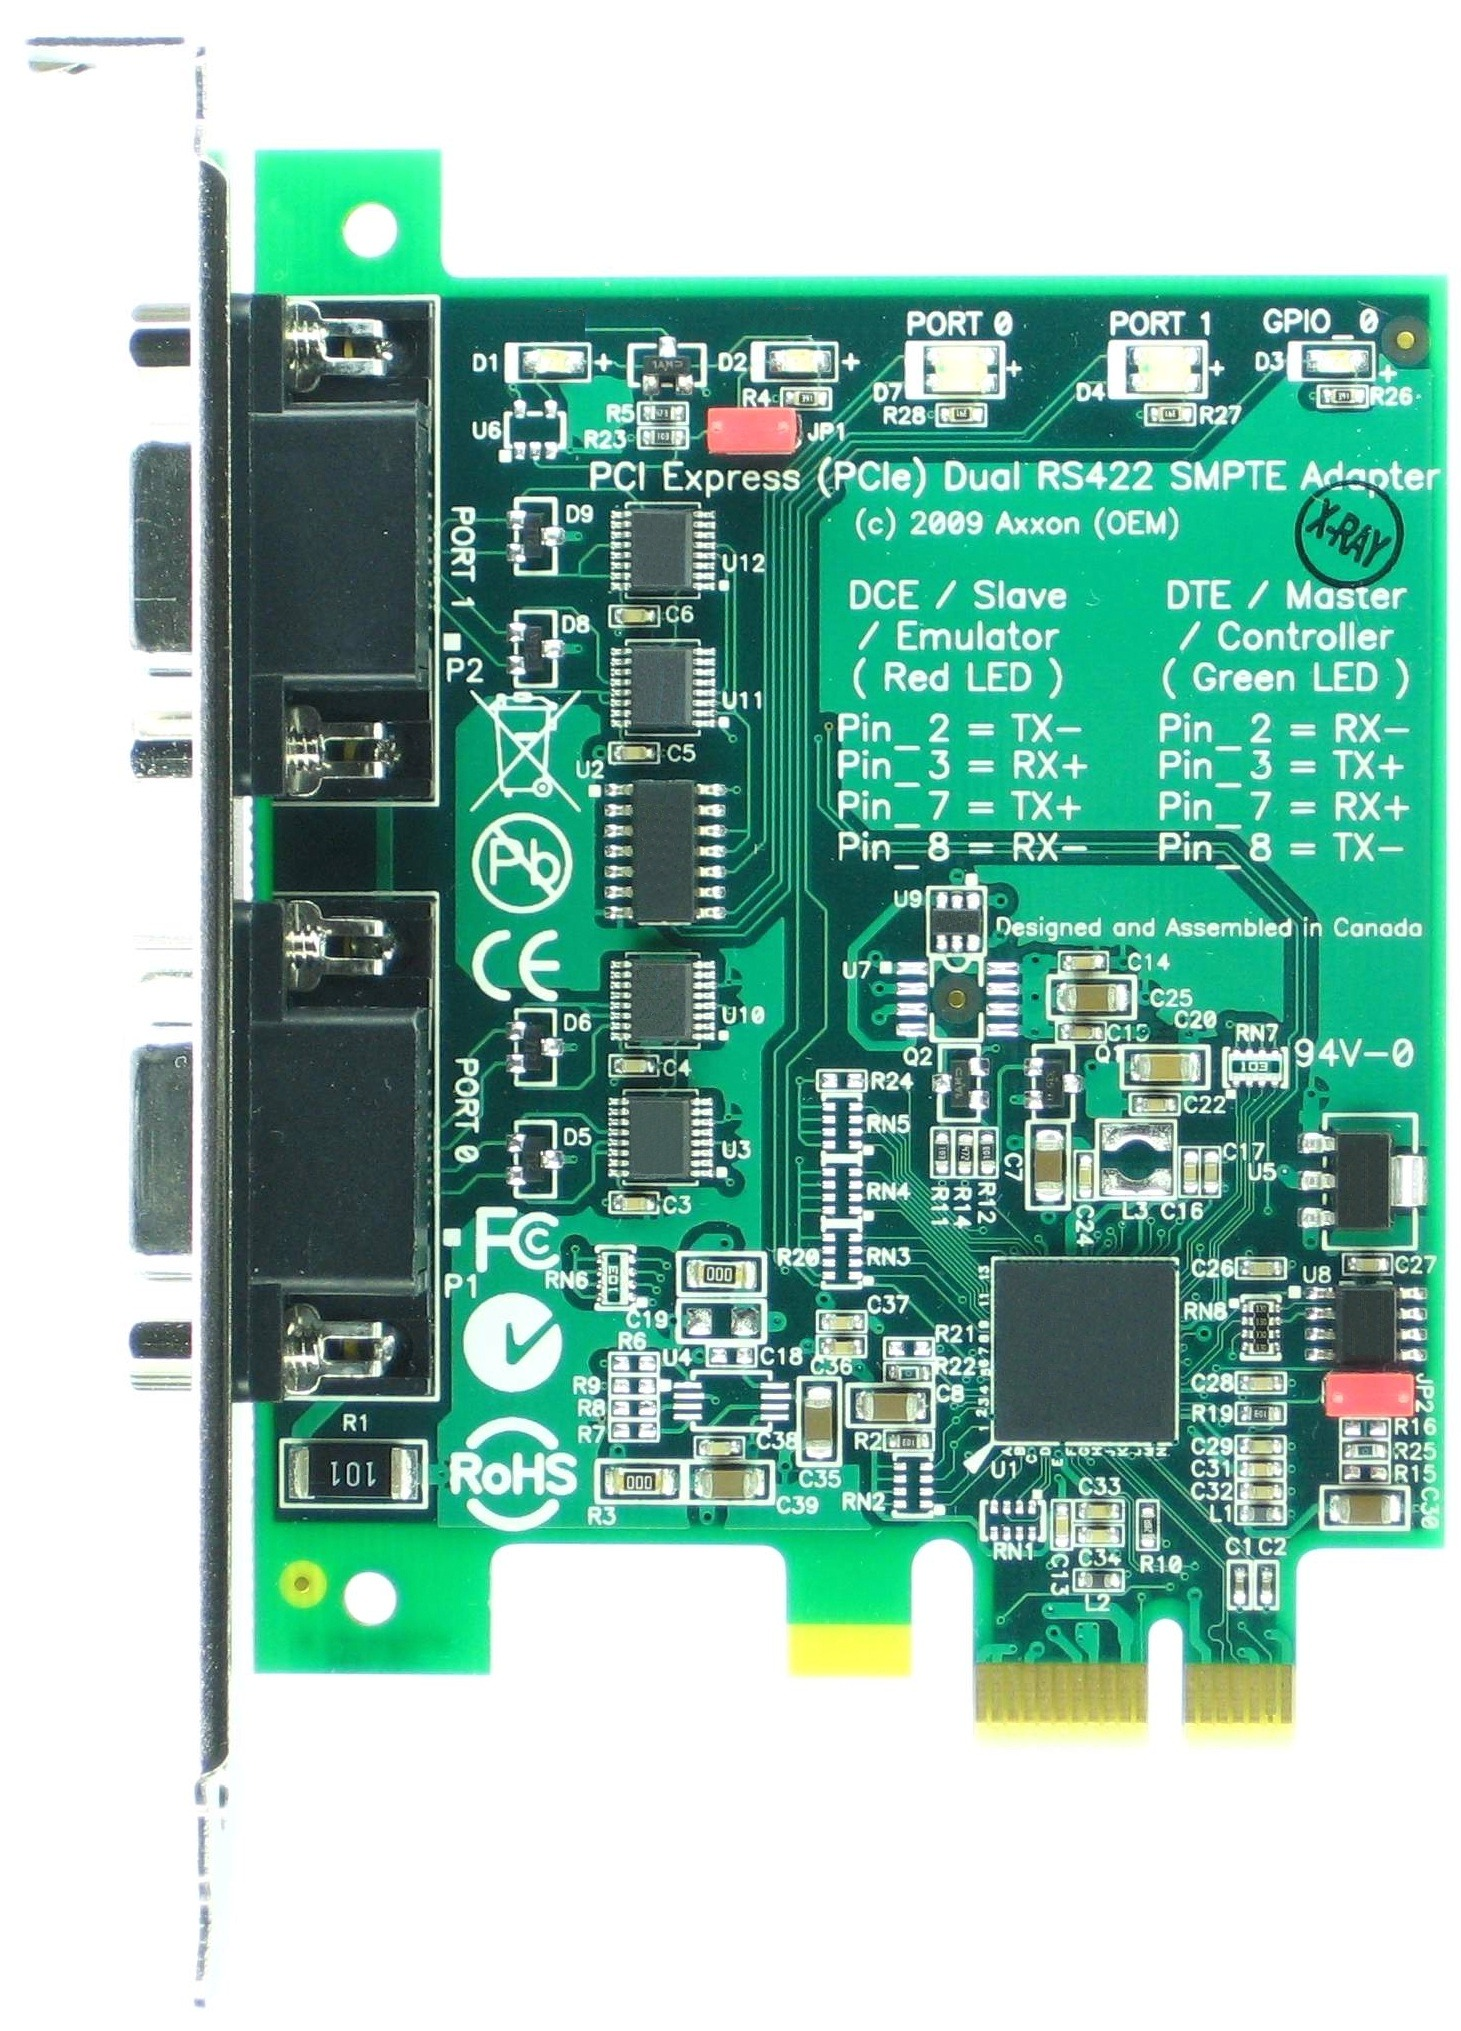 Click for large picture of the PCI Express (PCIe) LF775KB SMPTE Dual RS422 adapter